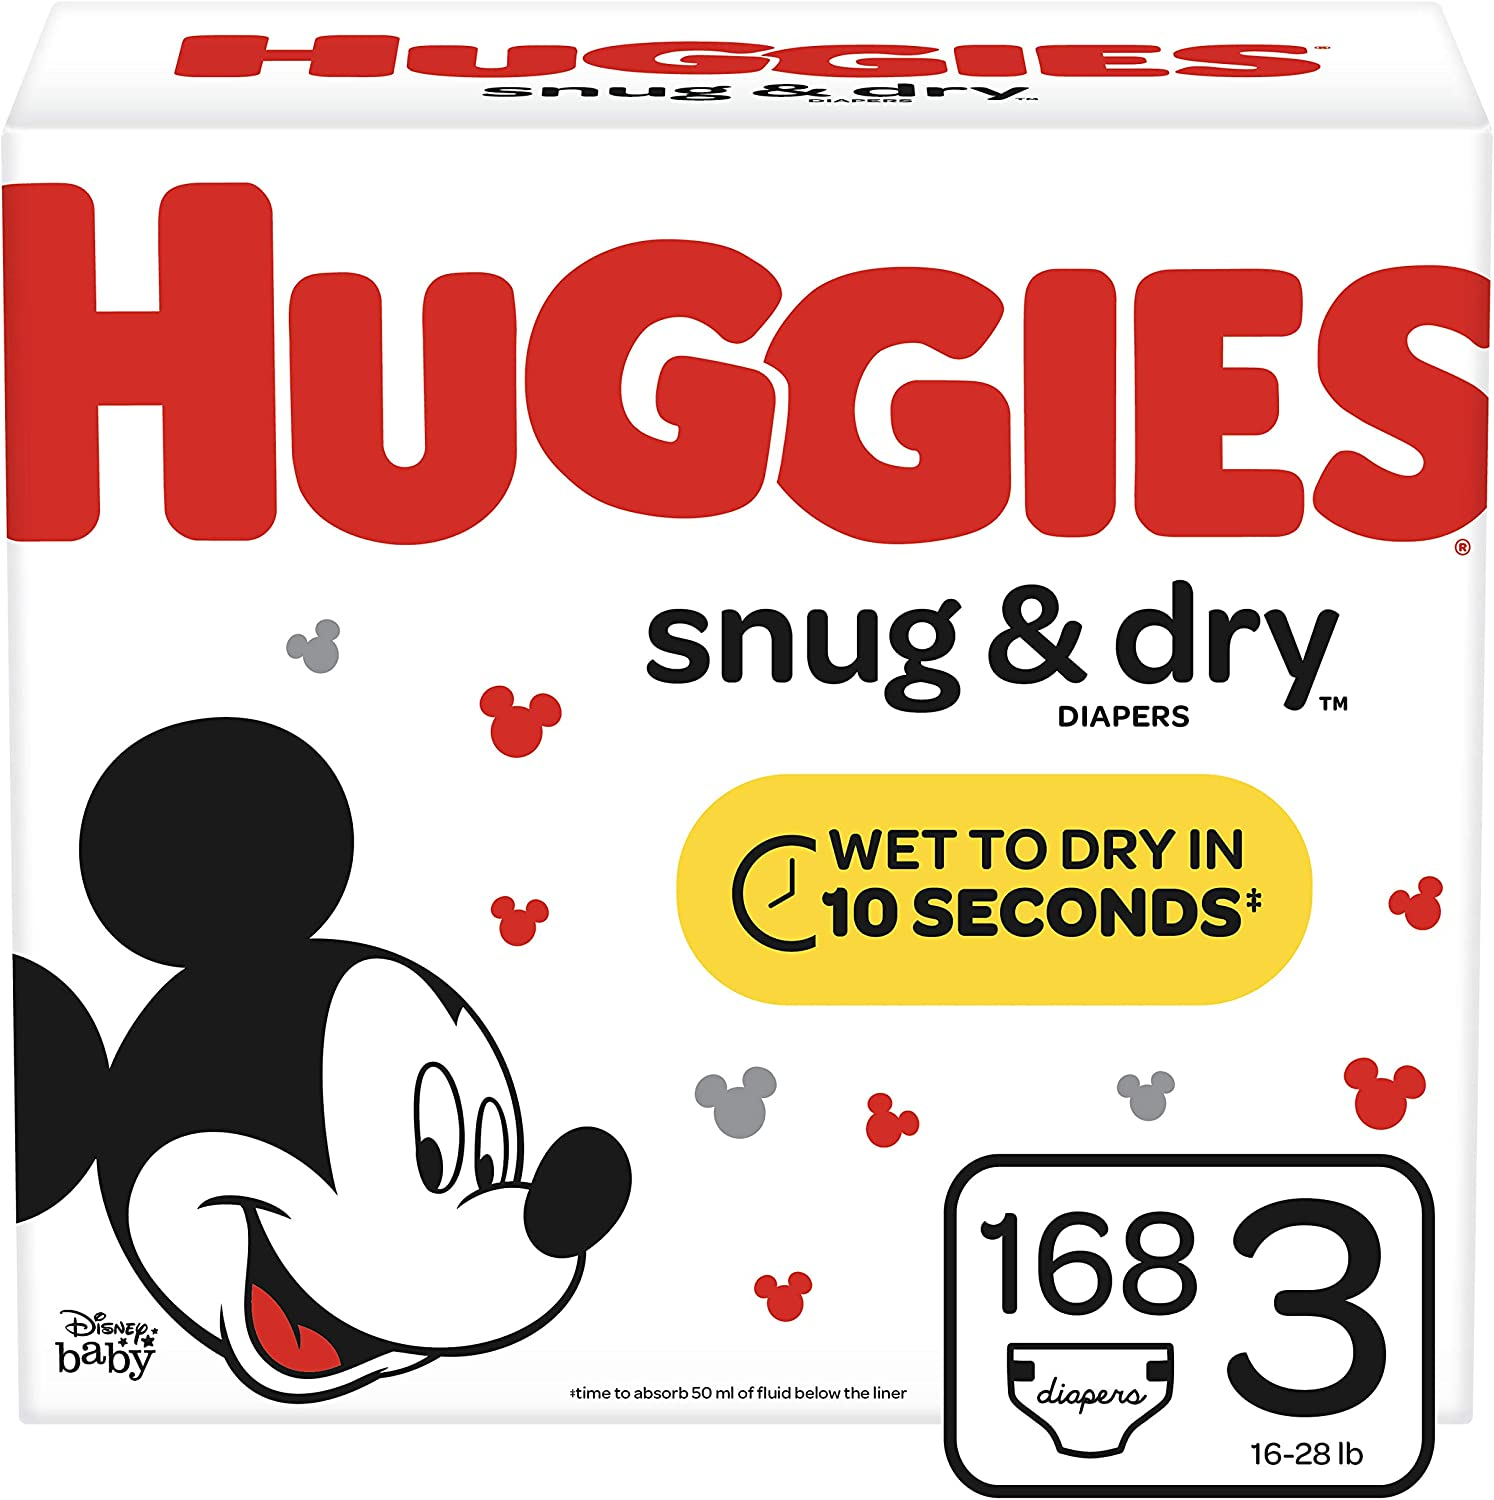 Huggies Snug & Dry Diapers, Size 3 (16-28 lb.), 168 Ct, Giant Pack (Packaging May Vary)